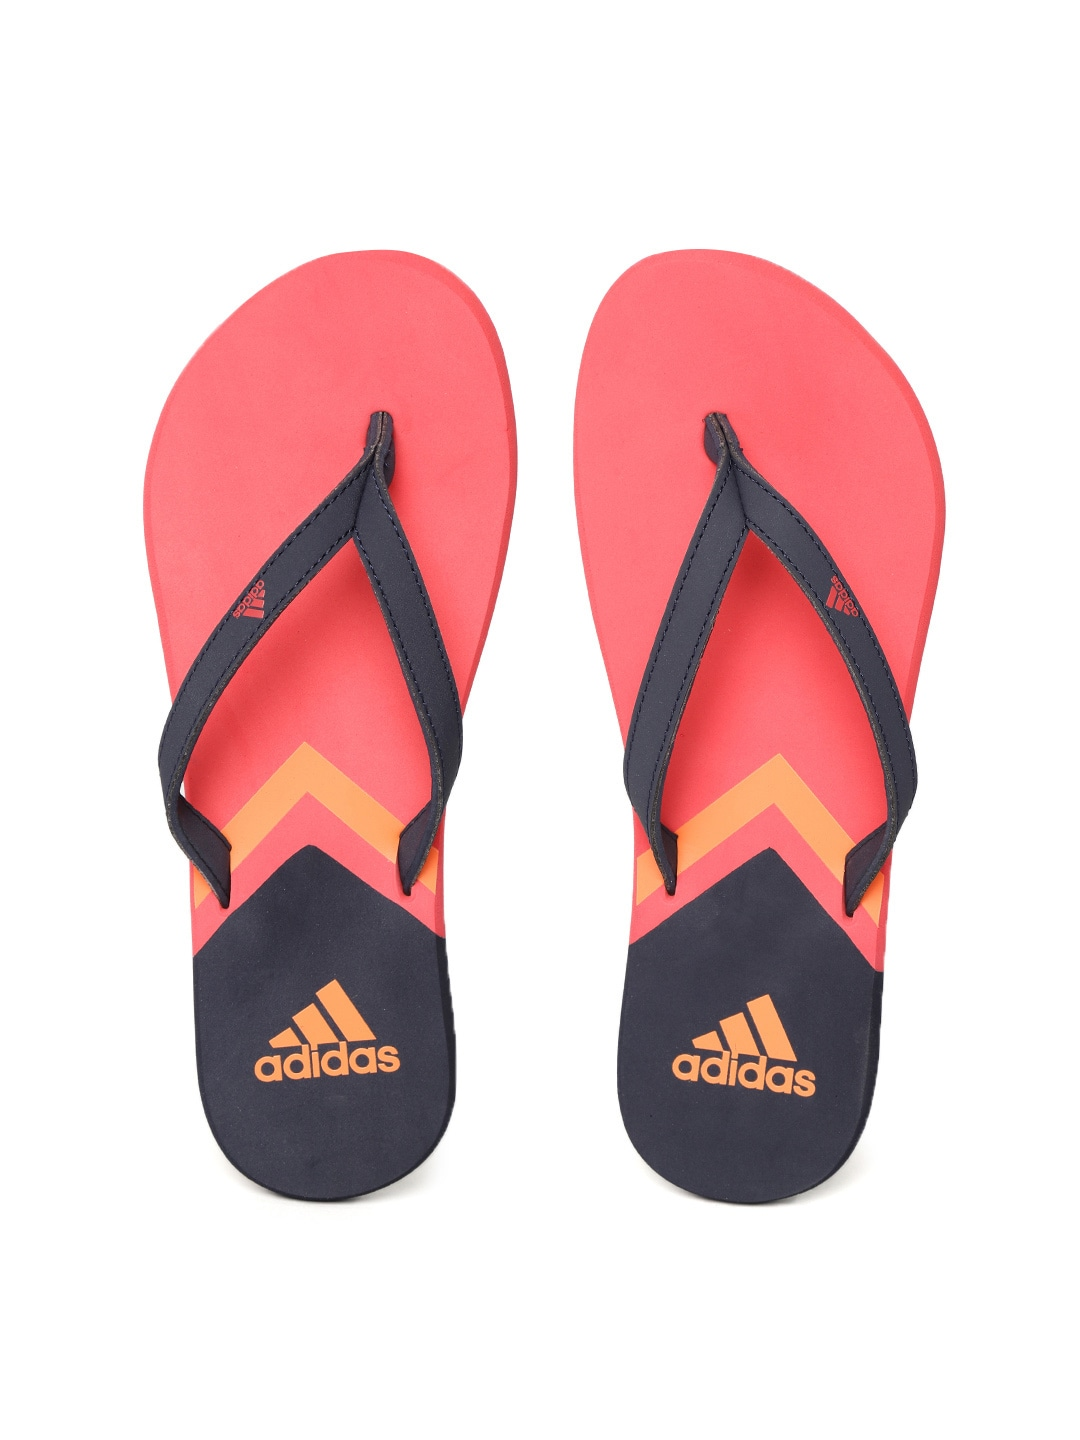 6948e1469 Adidas Liverpool Backpack Sweatshirts Flip Flops - Buy Adidas Liverpool  Backpack Sweatshirts Flip Flops online in India